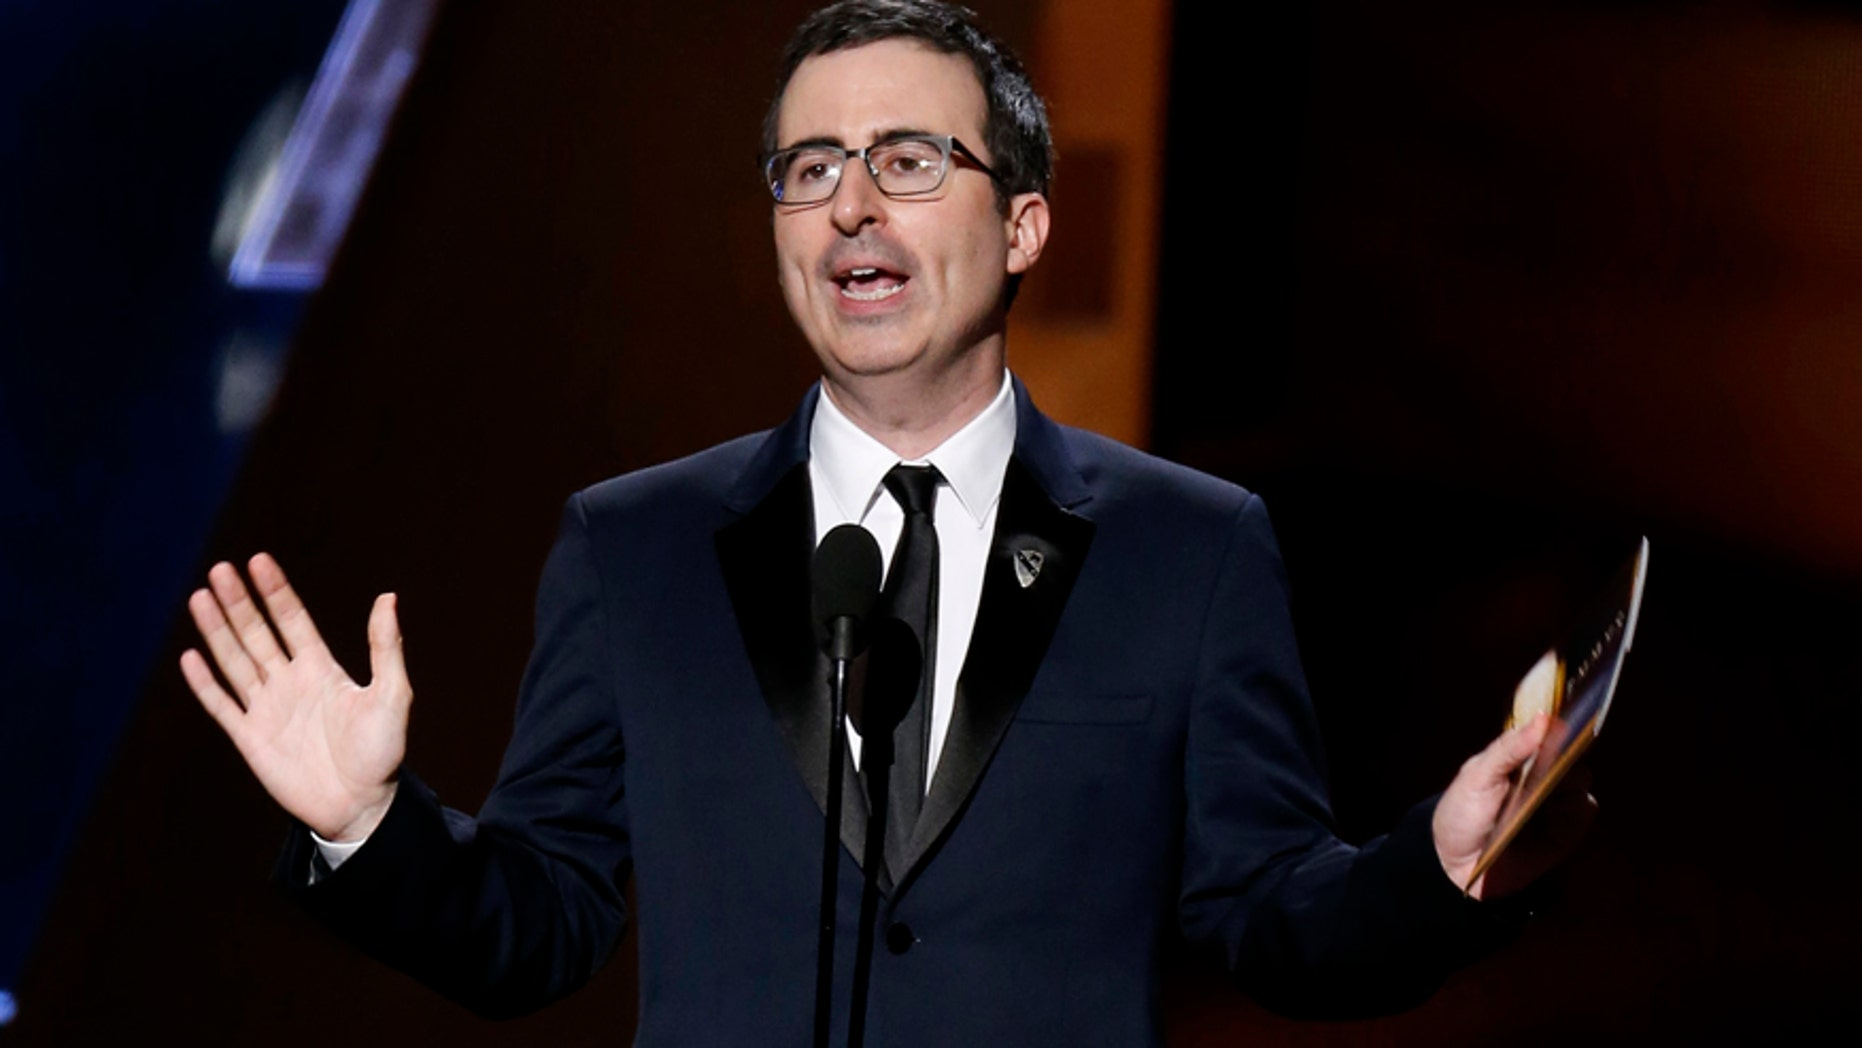 John Oliver tackled the Dustin Hoffman assault rumors during a live Q&A, but did not receive answers. Here Oliver presents an award at the 67th Annual  Emmy Awards in Los Angeles, September 2015